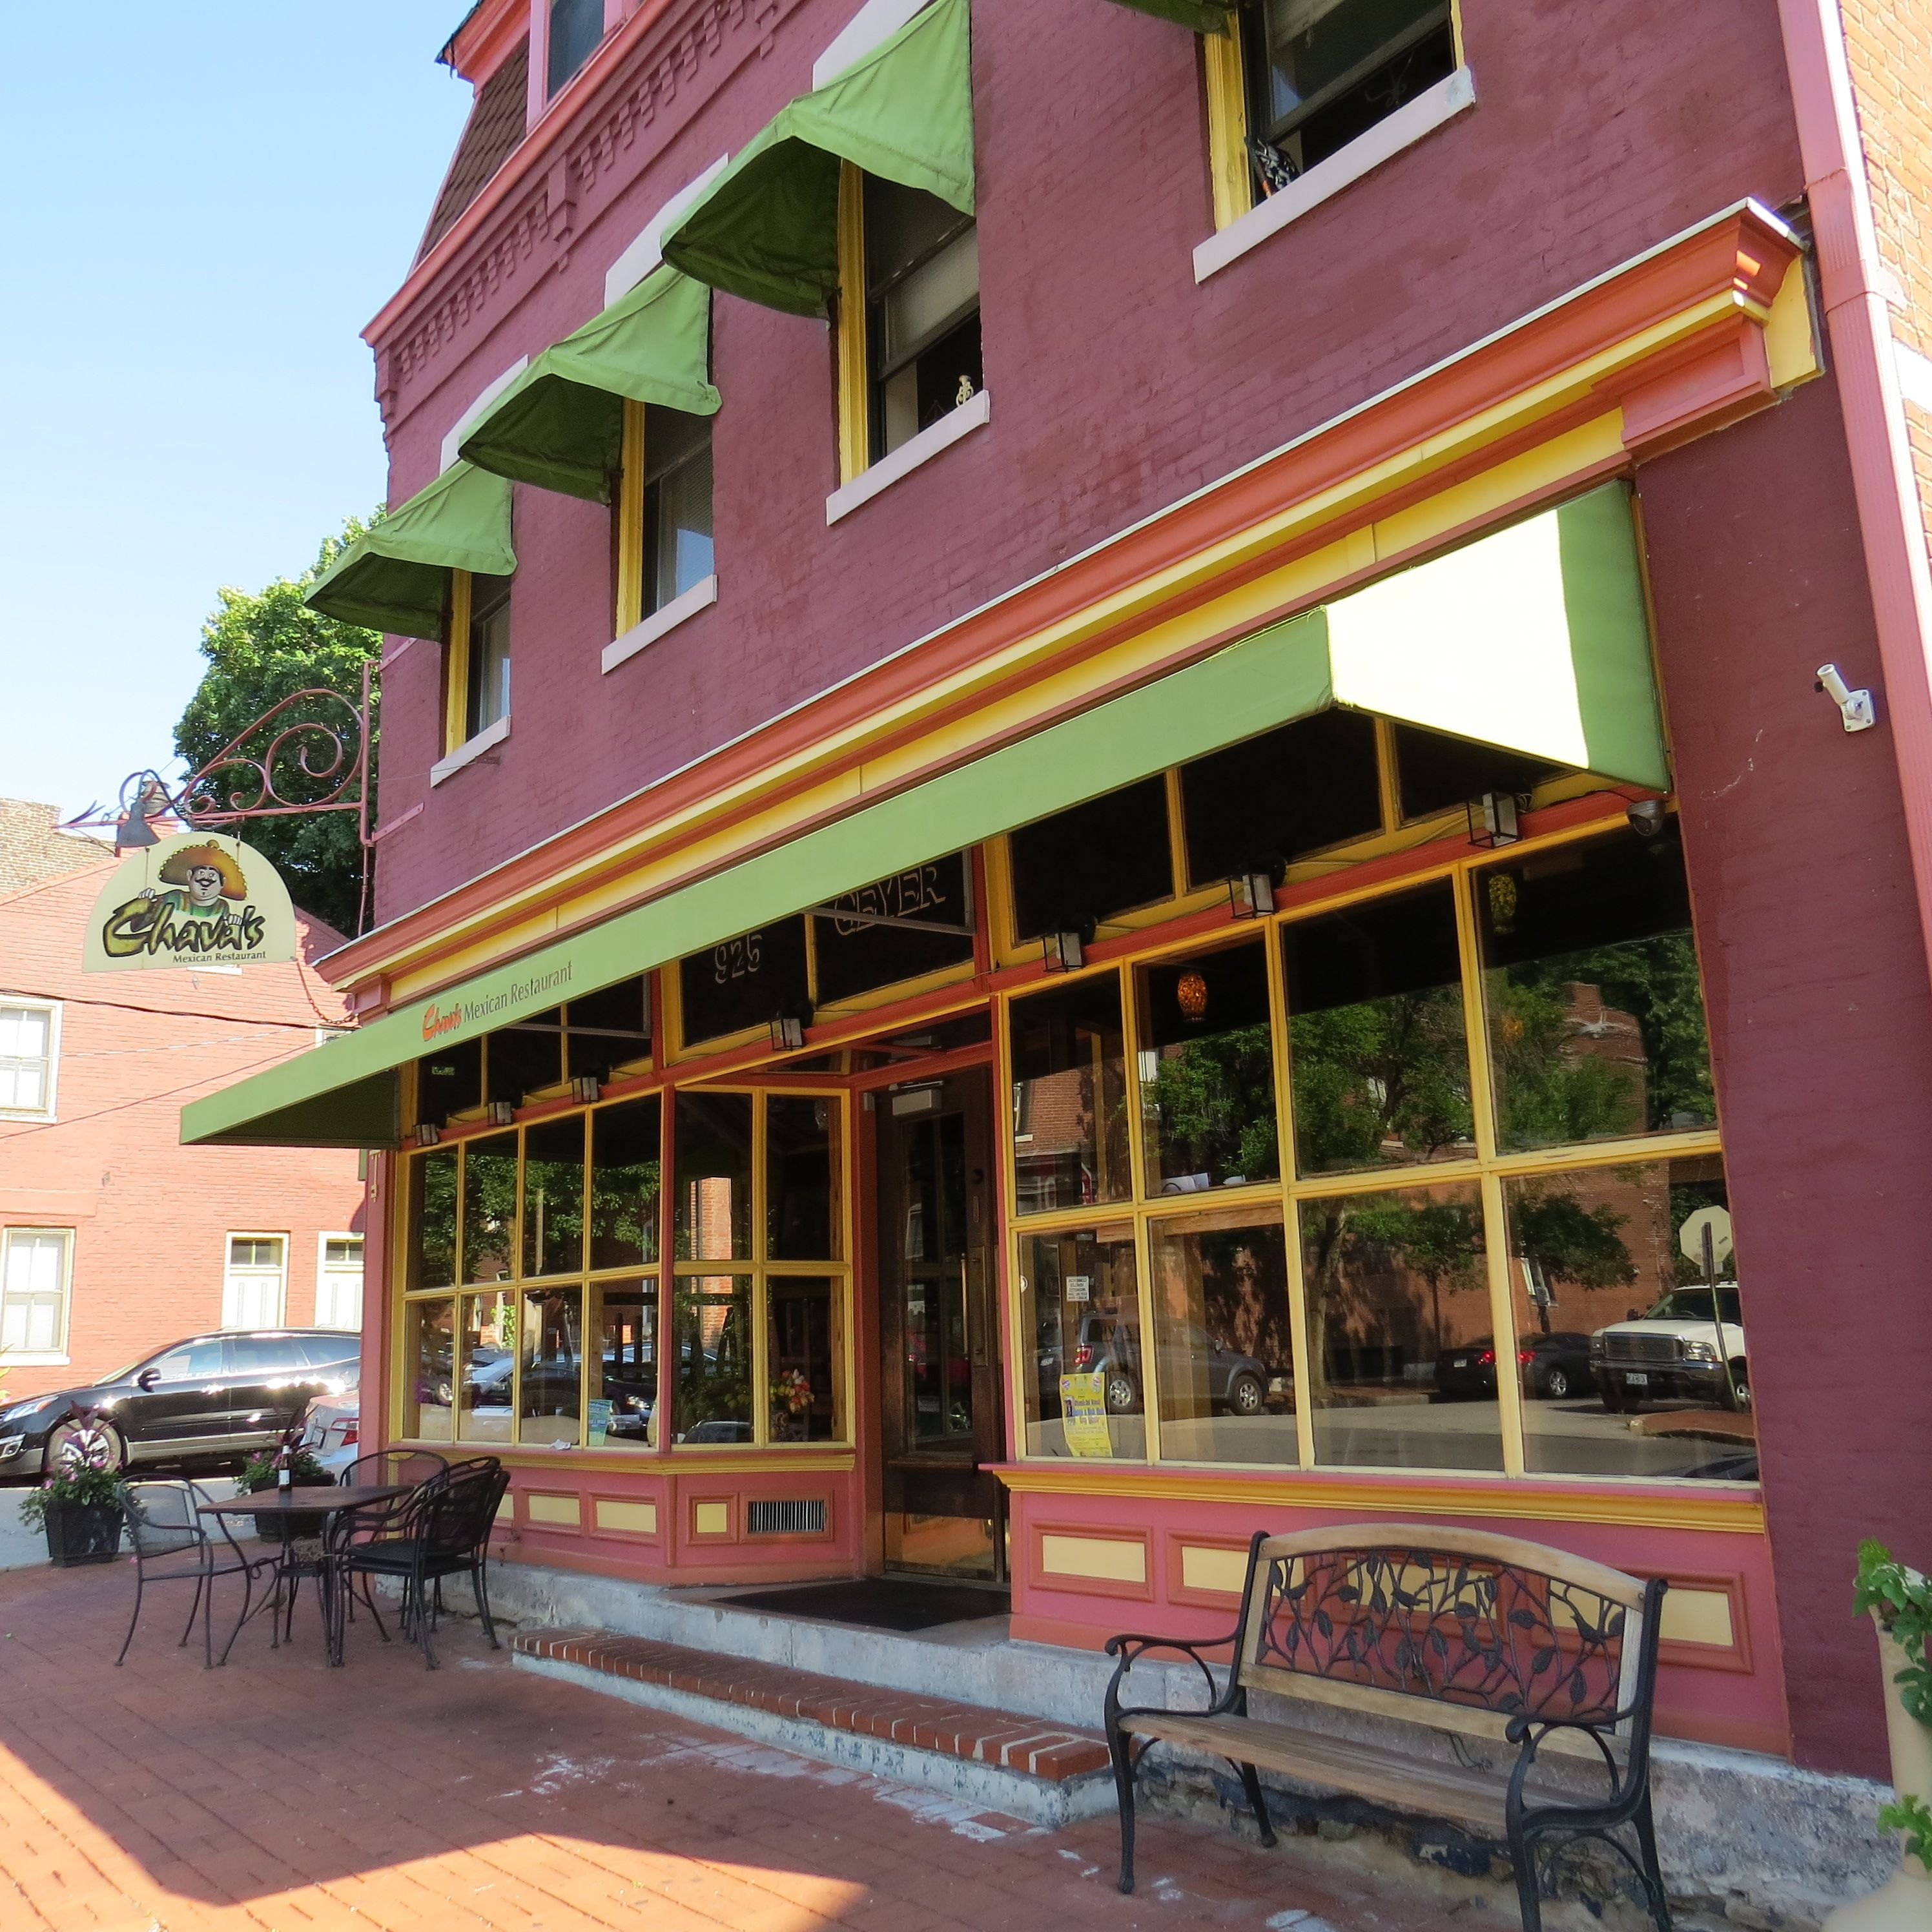 Chava S Mexican Restaurant Is Sizzlin In Soulard St Louis Mo Stlrestaurant News The Past Several Years Has Experienced An Explosion Of